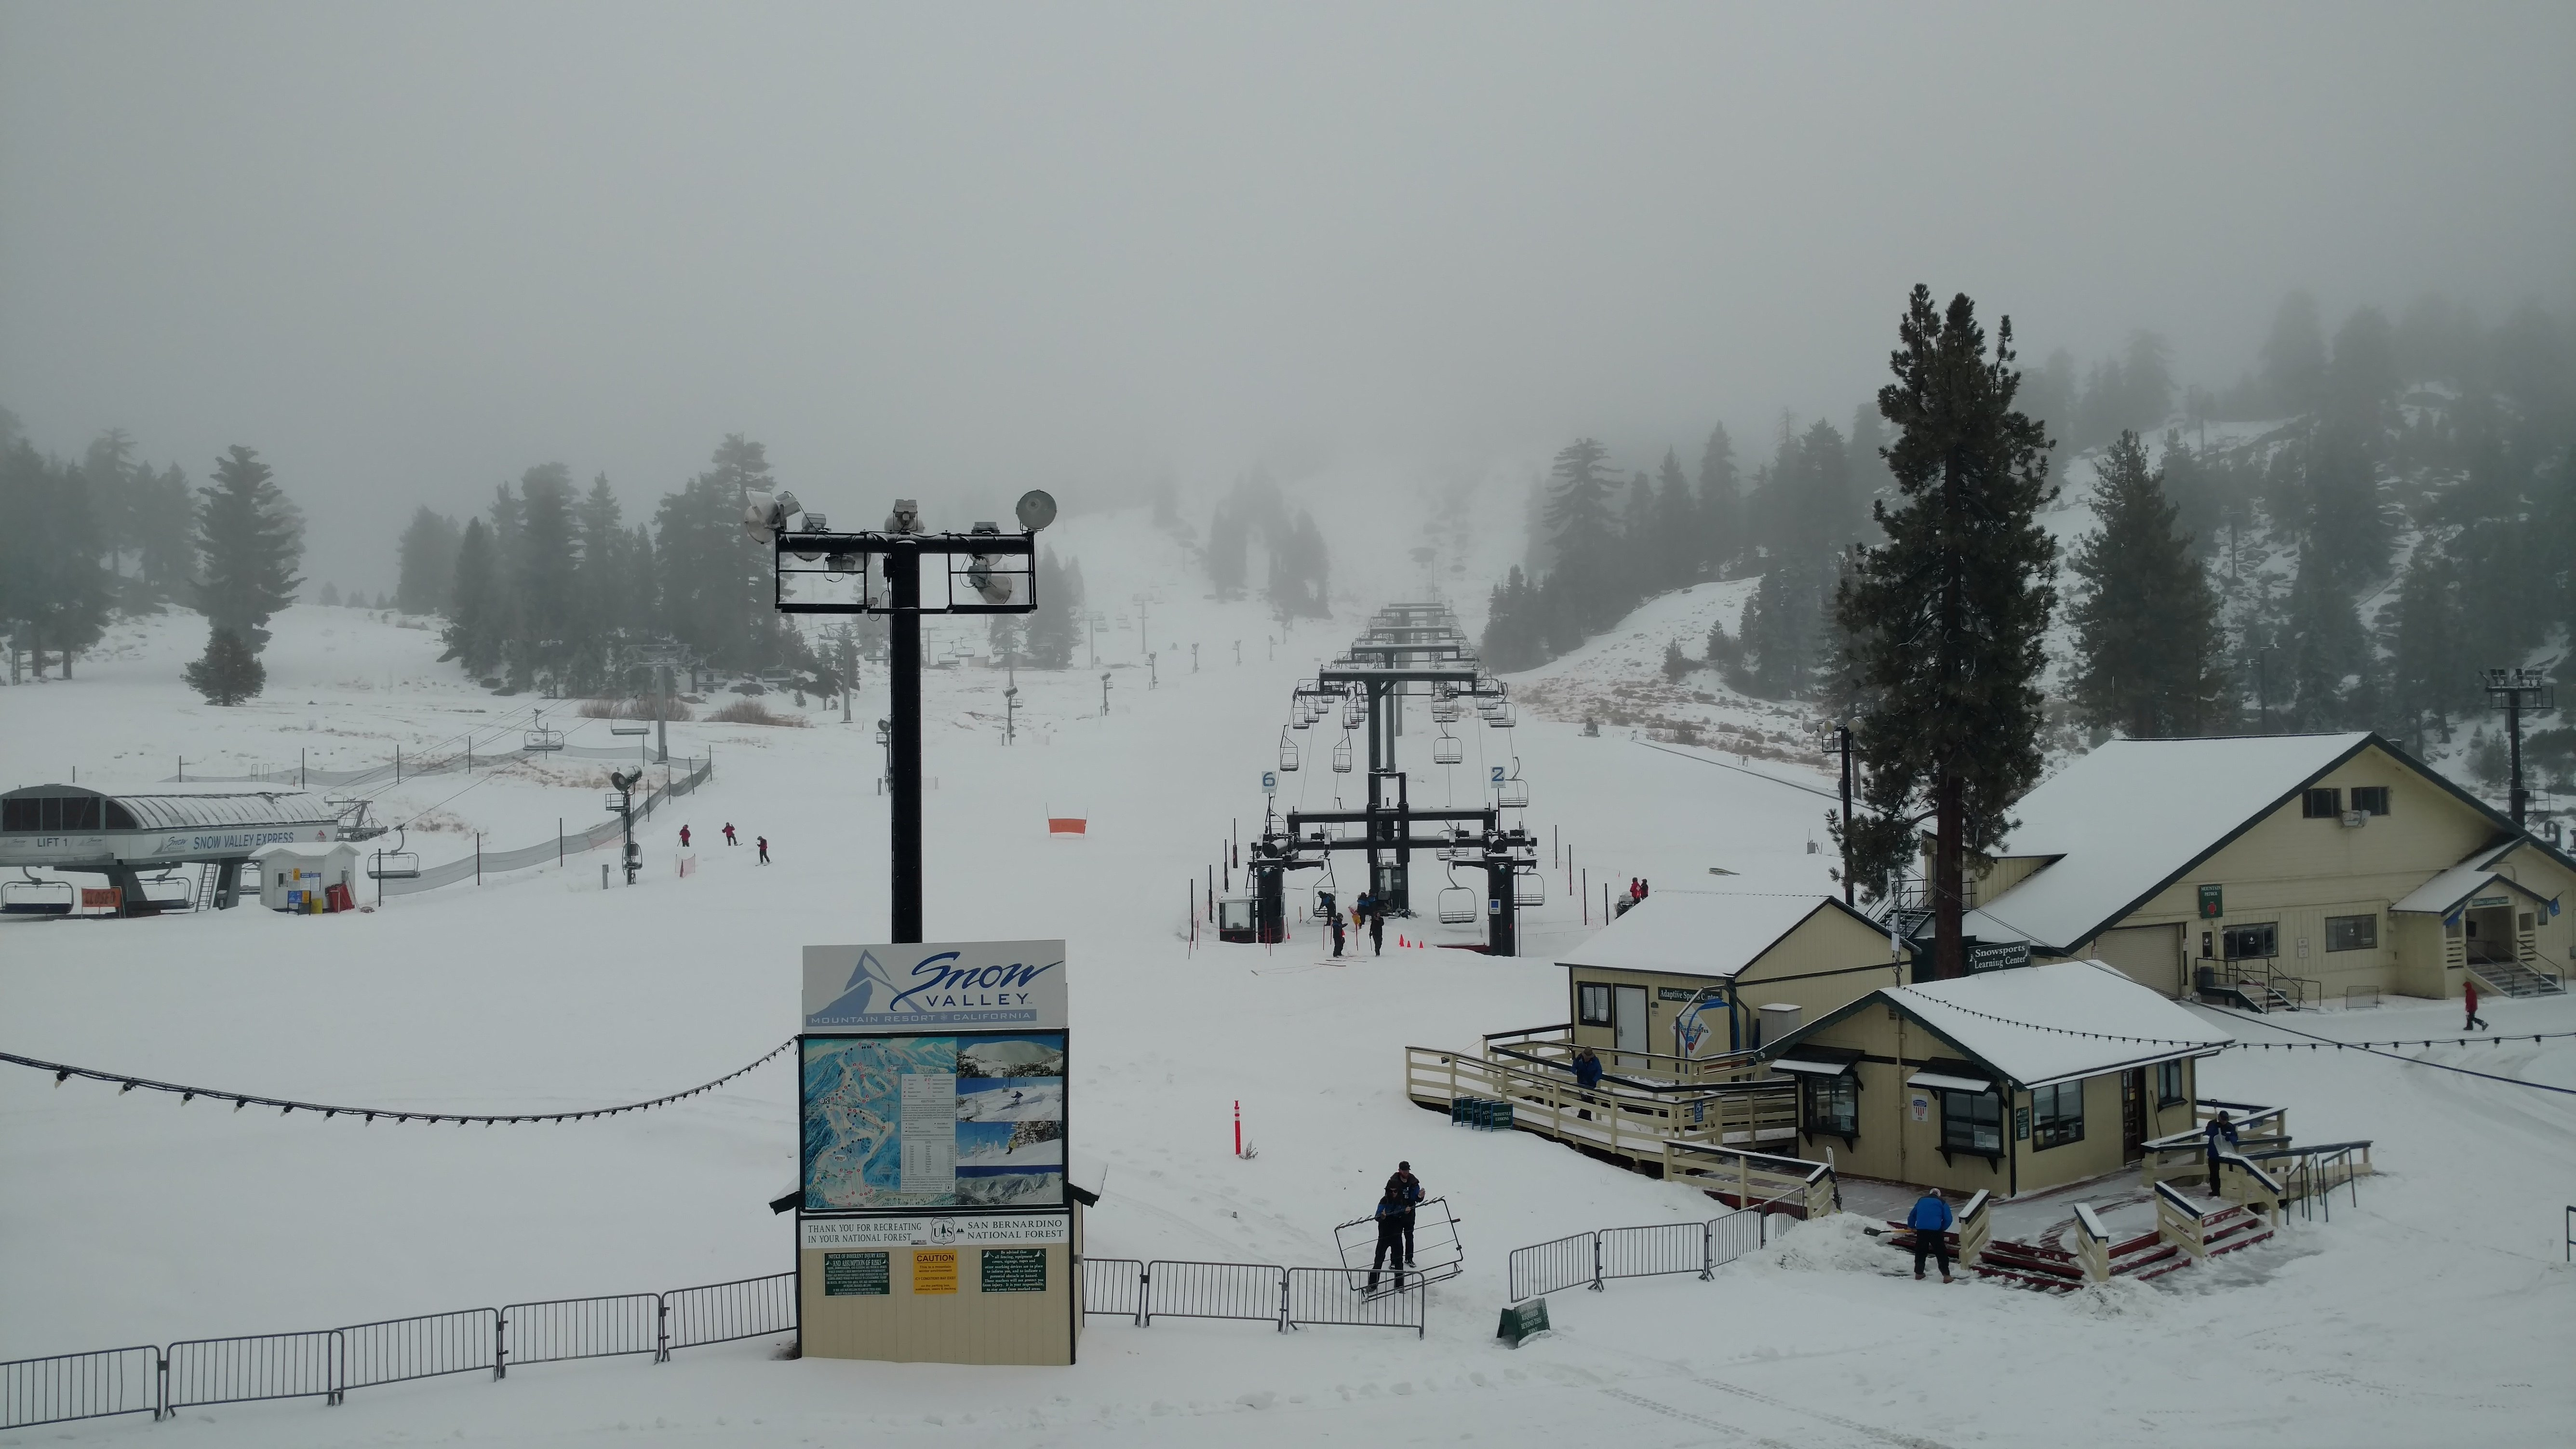 View of Snow Valley lifts on overcast day